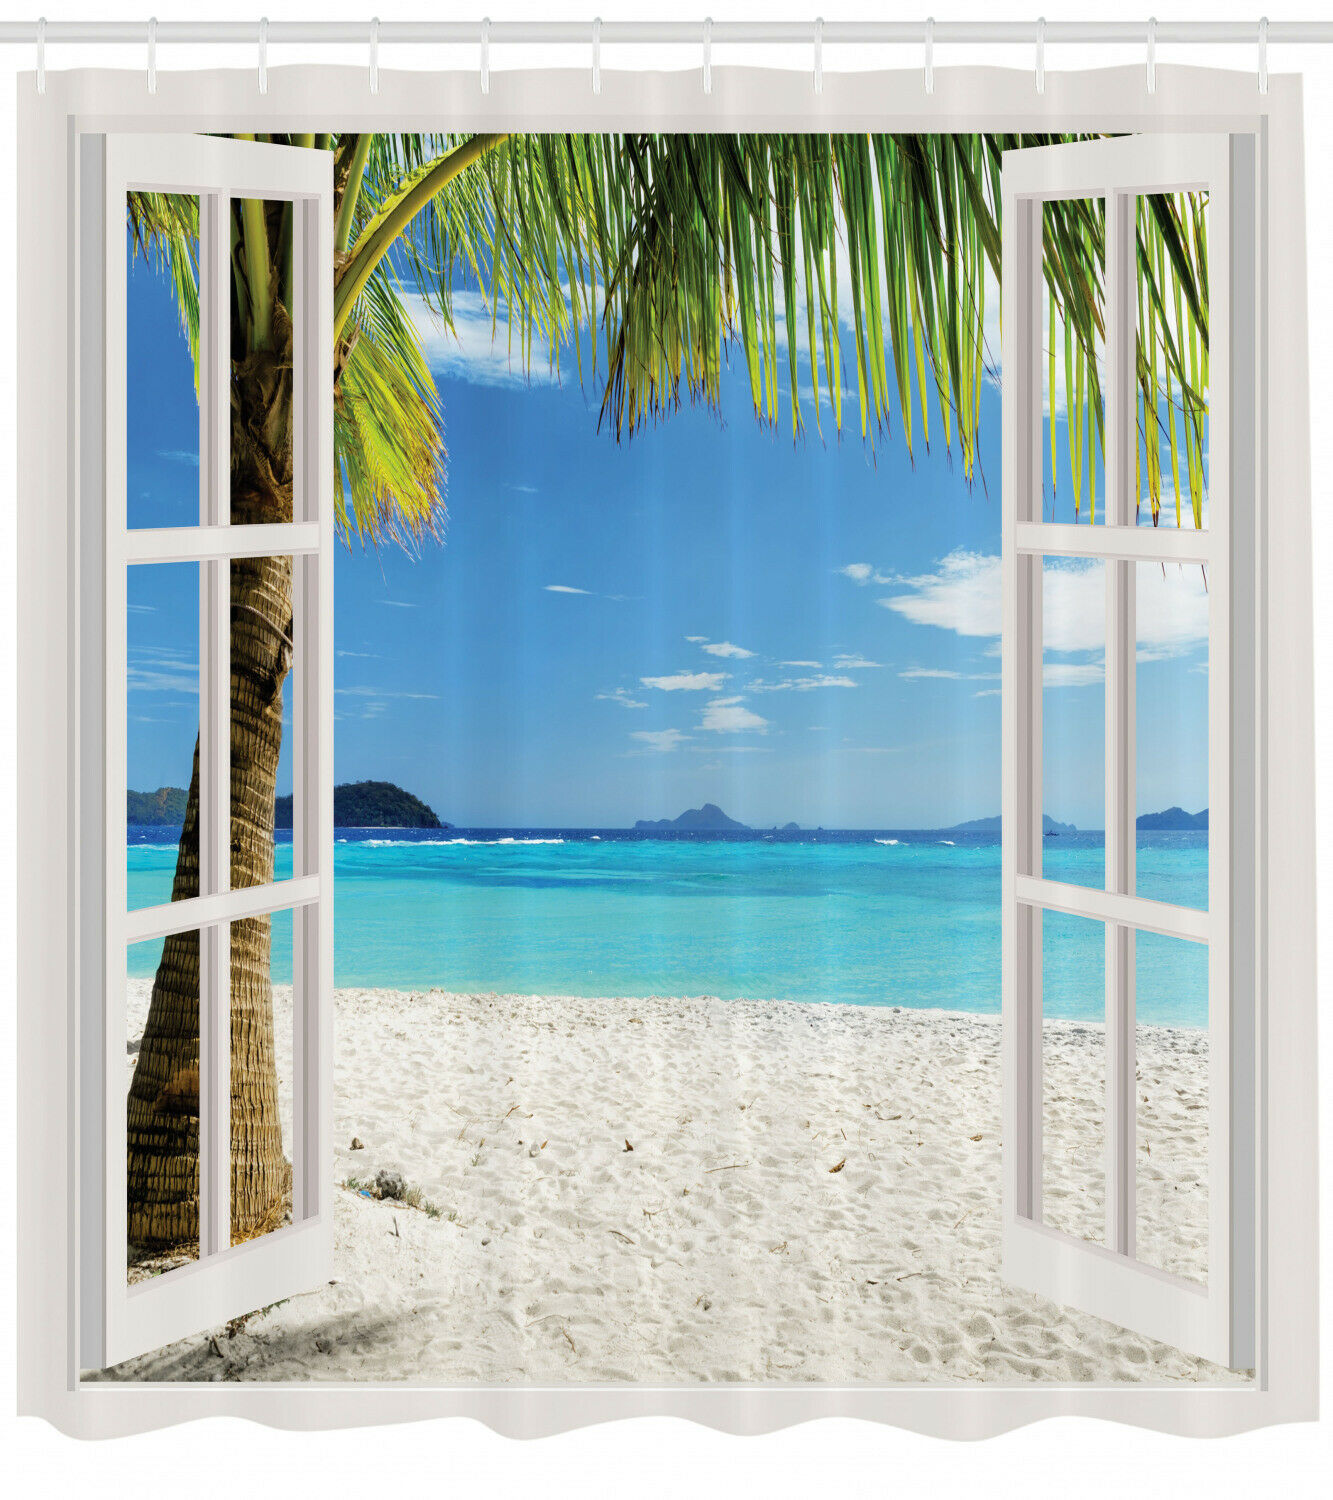 Tropical Shower Curtain Ocean Island Palm Tree Print For Bathroom 70 Inches Long